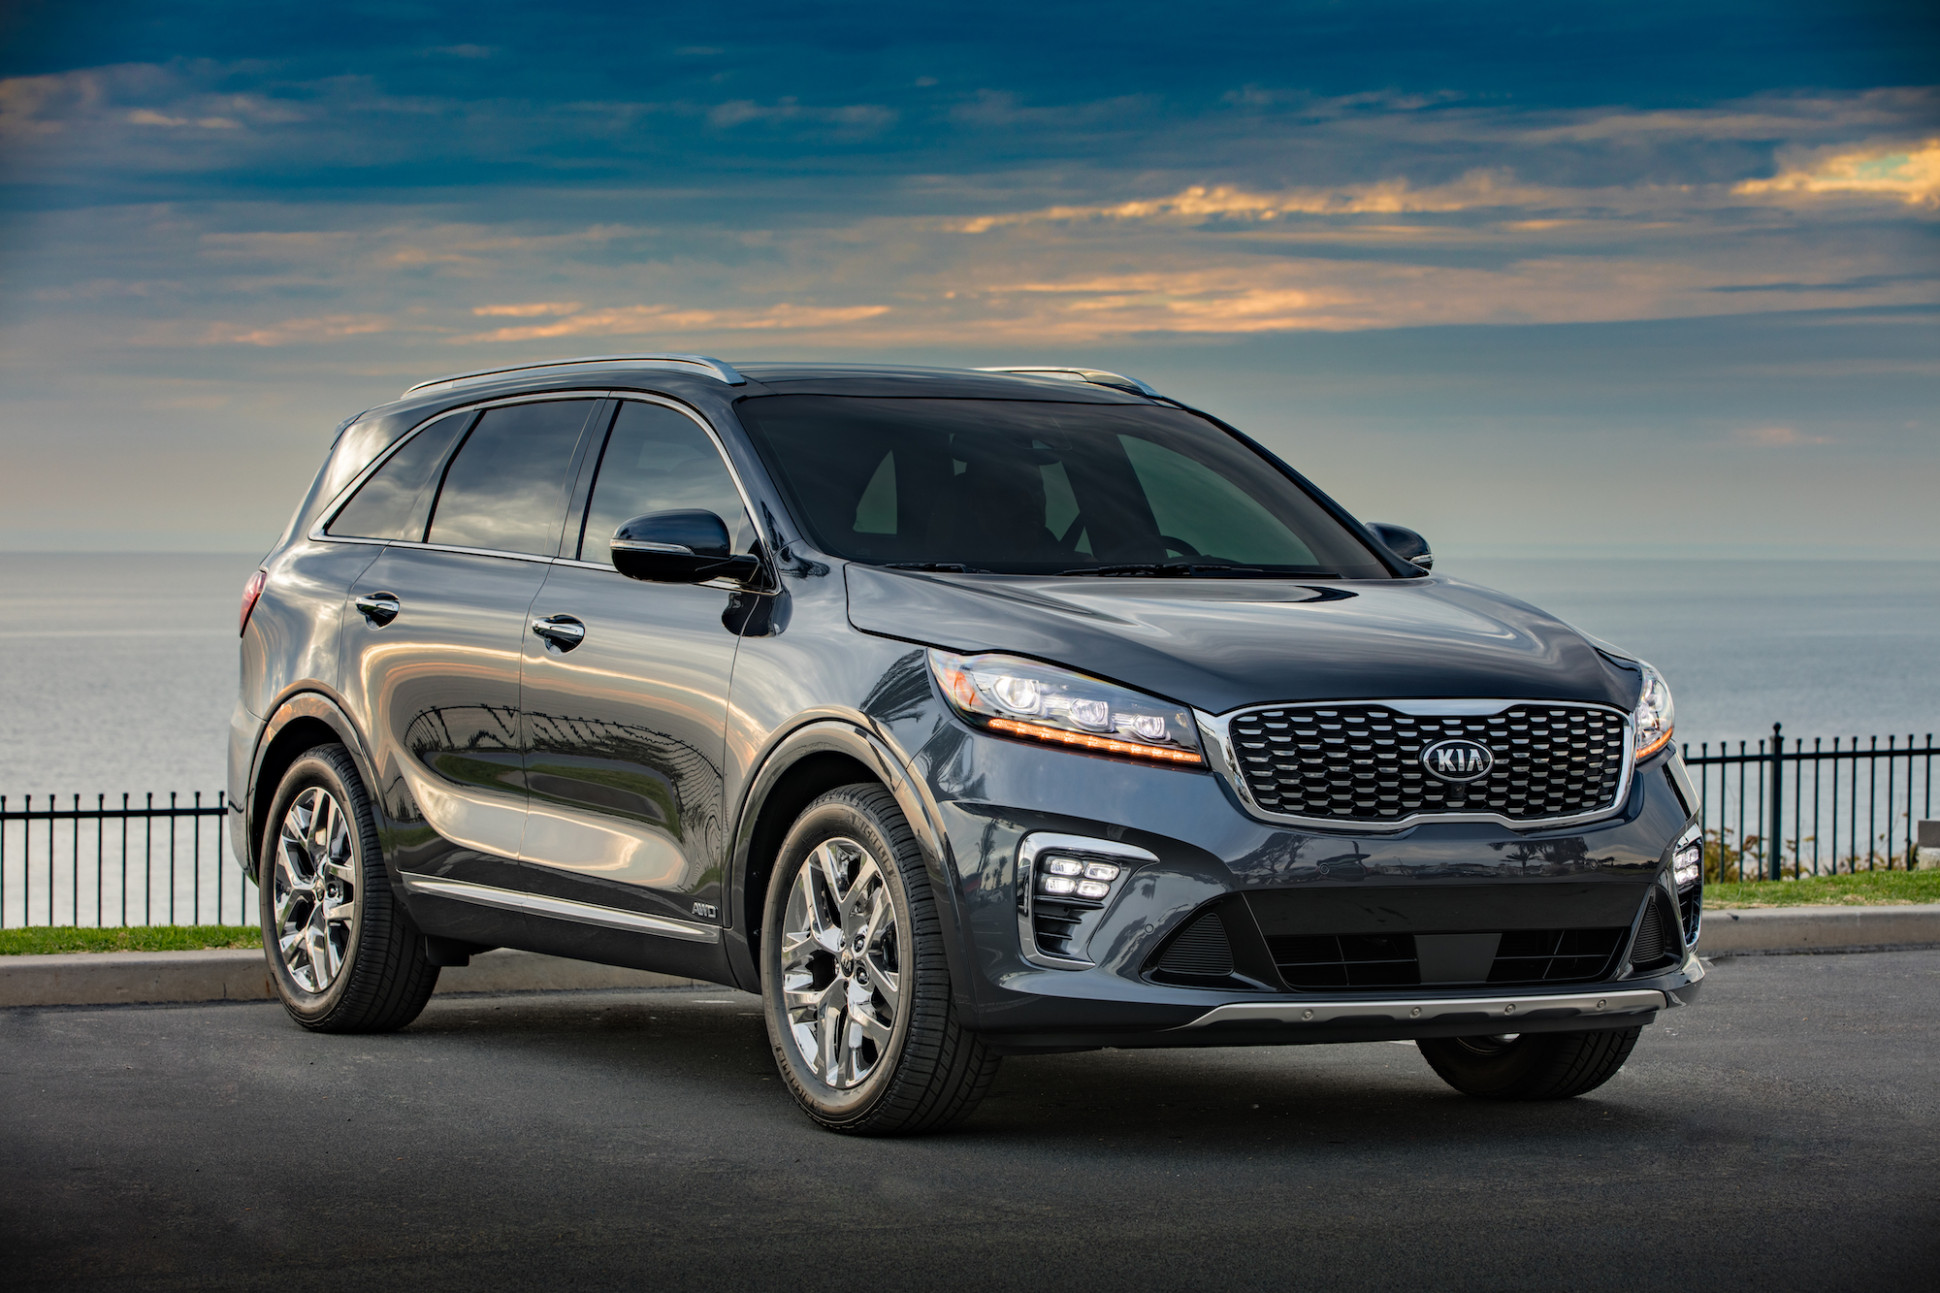 8 Kia Sorento Review, Ratings, Specs, Prices, and Photos - The ..